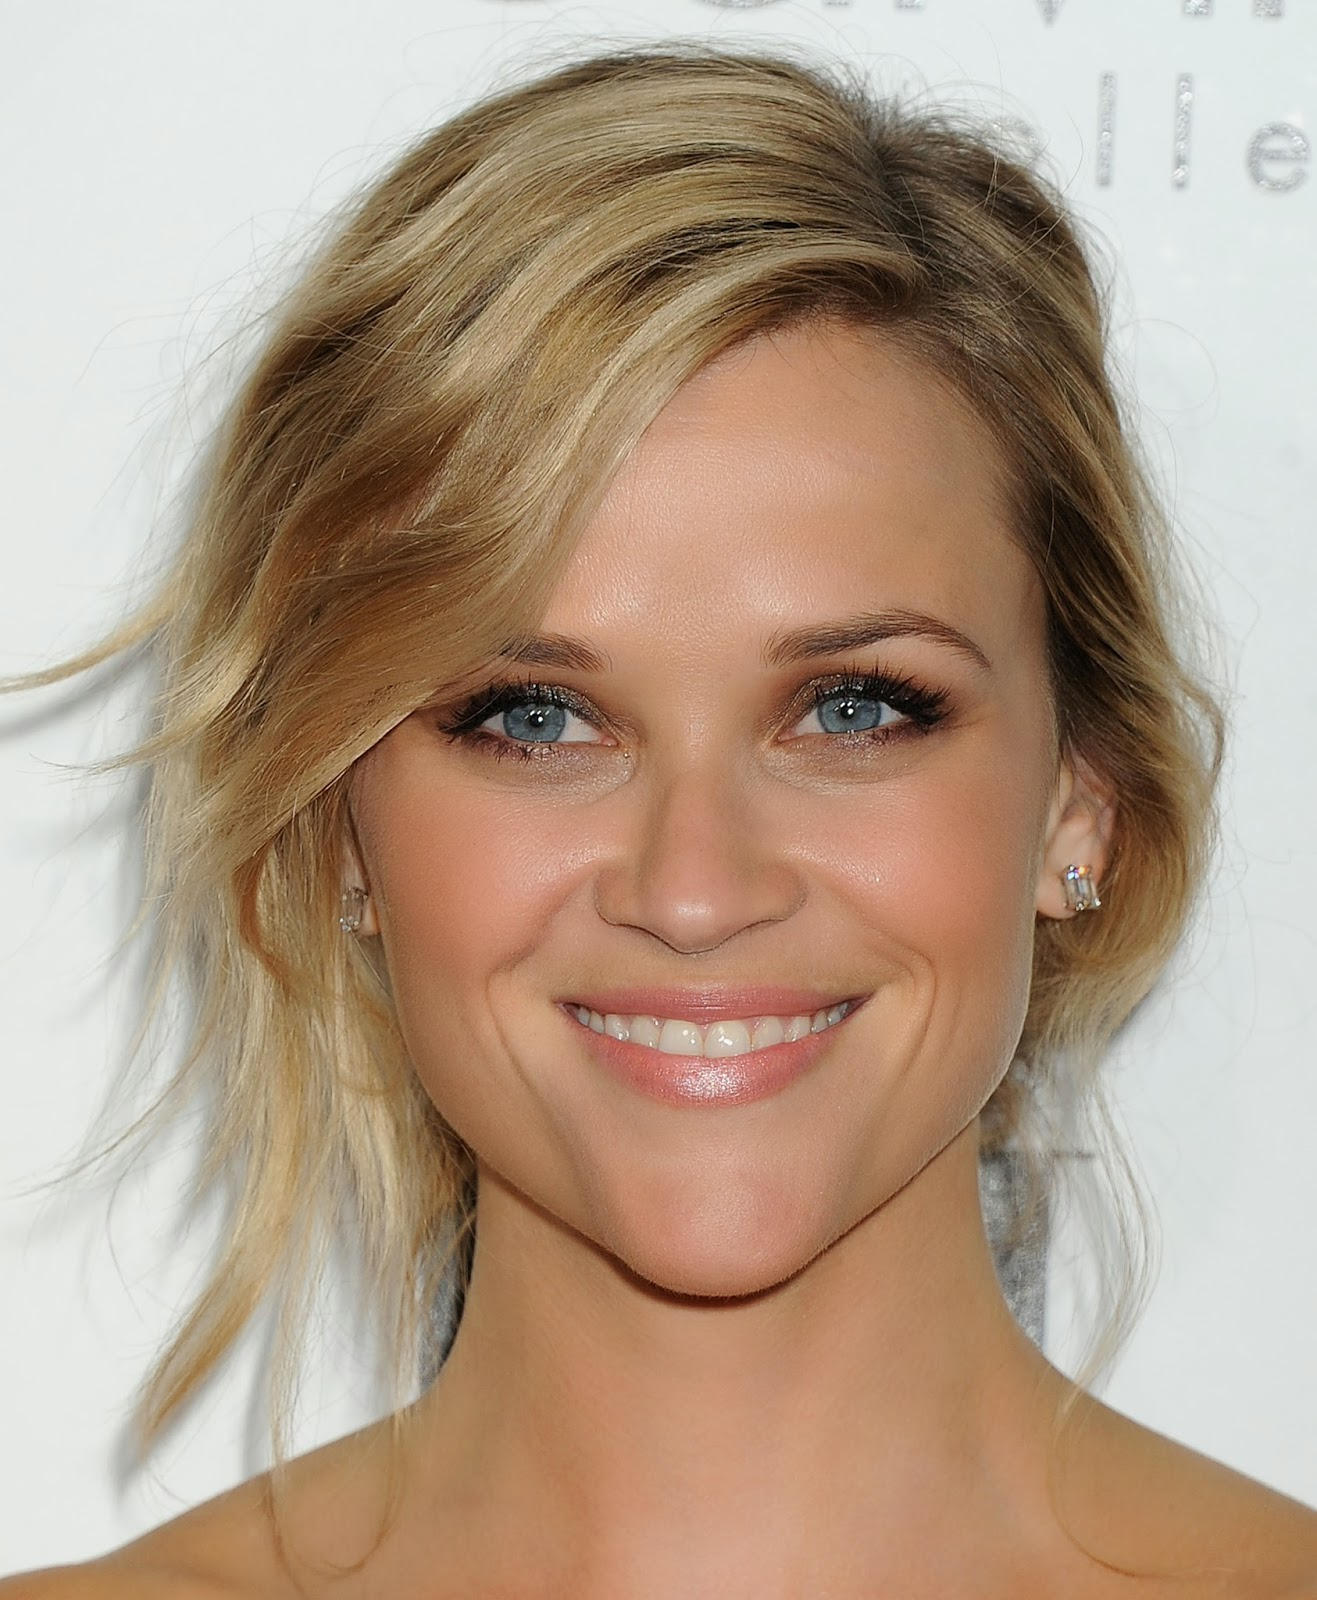 Makeup Envy Reese Witherspoon Jennysue Makeup